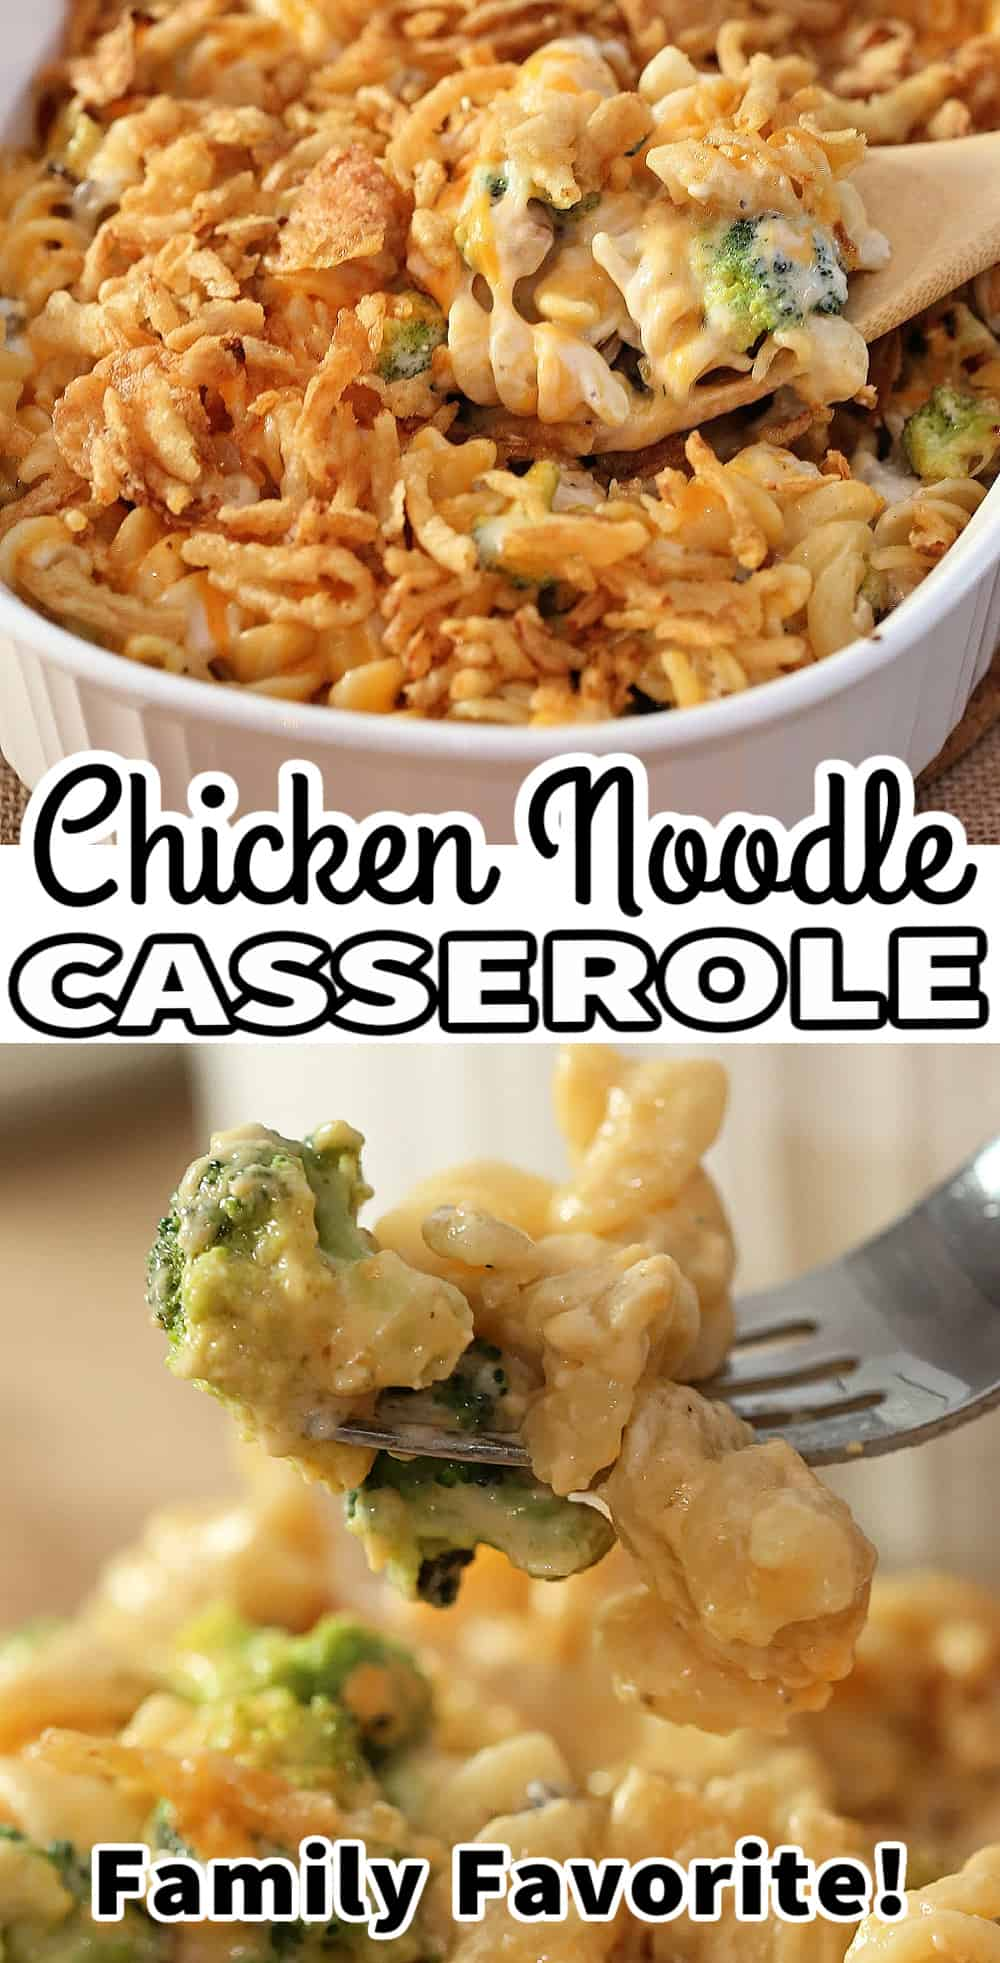 chicken noodle casserole with text